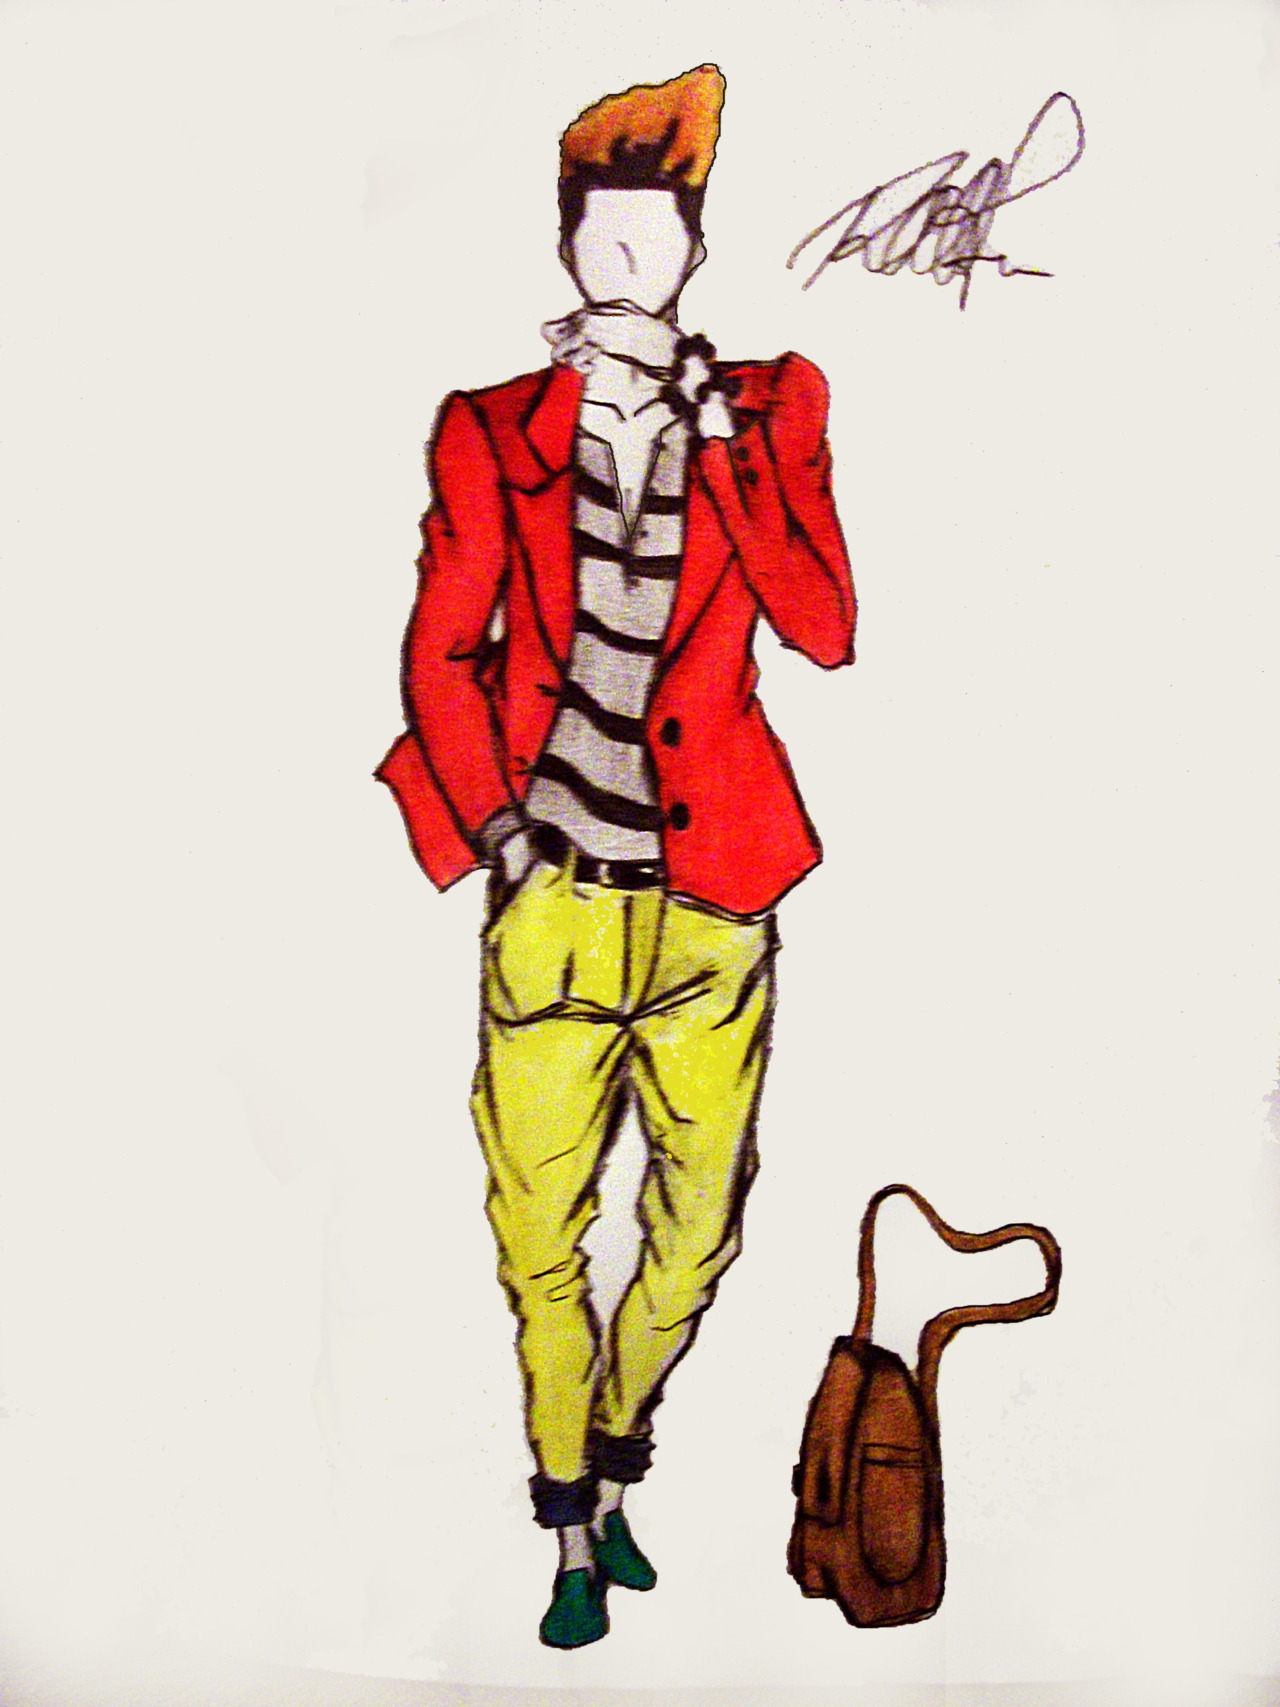 #My Latest Sketch. Check my blog out: http://raatfashion.tumblr.com/